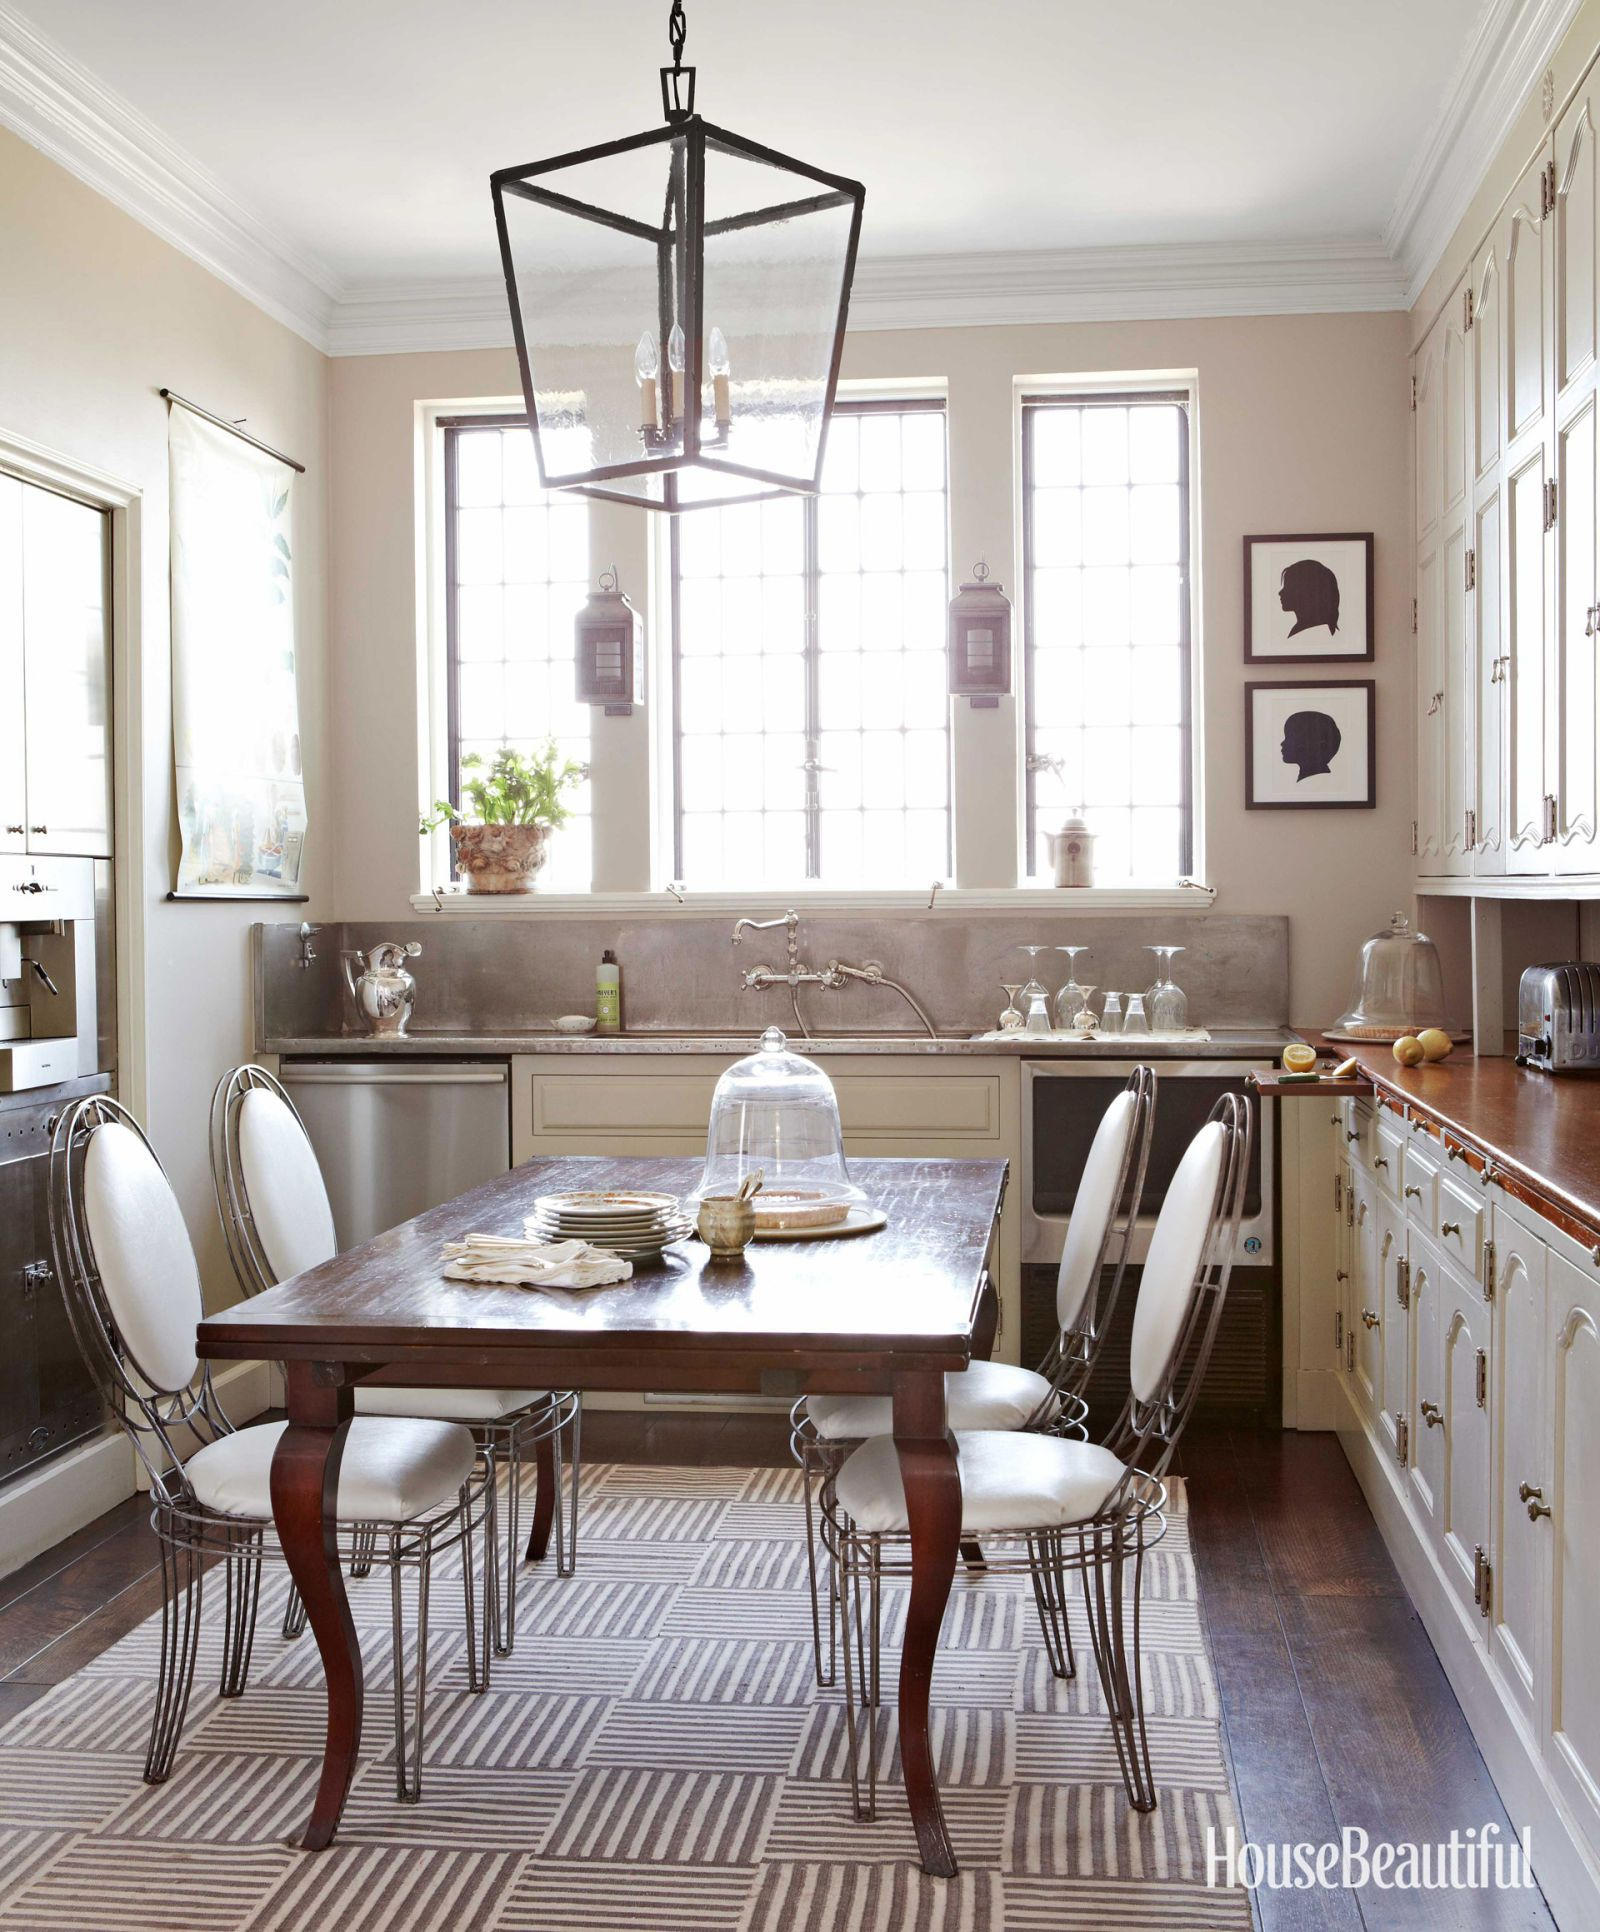 Kitchen and Bathroom Updates - Ideas for Updating Home Kitchens and ...